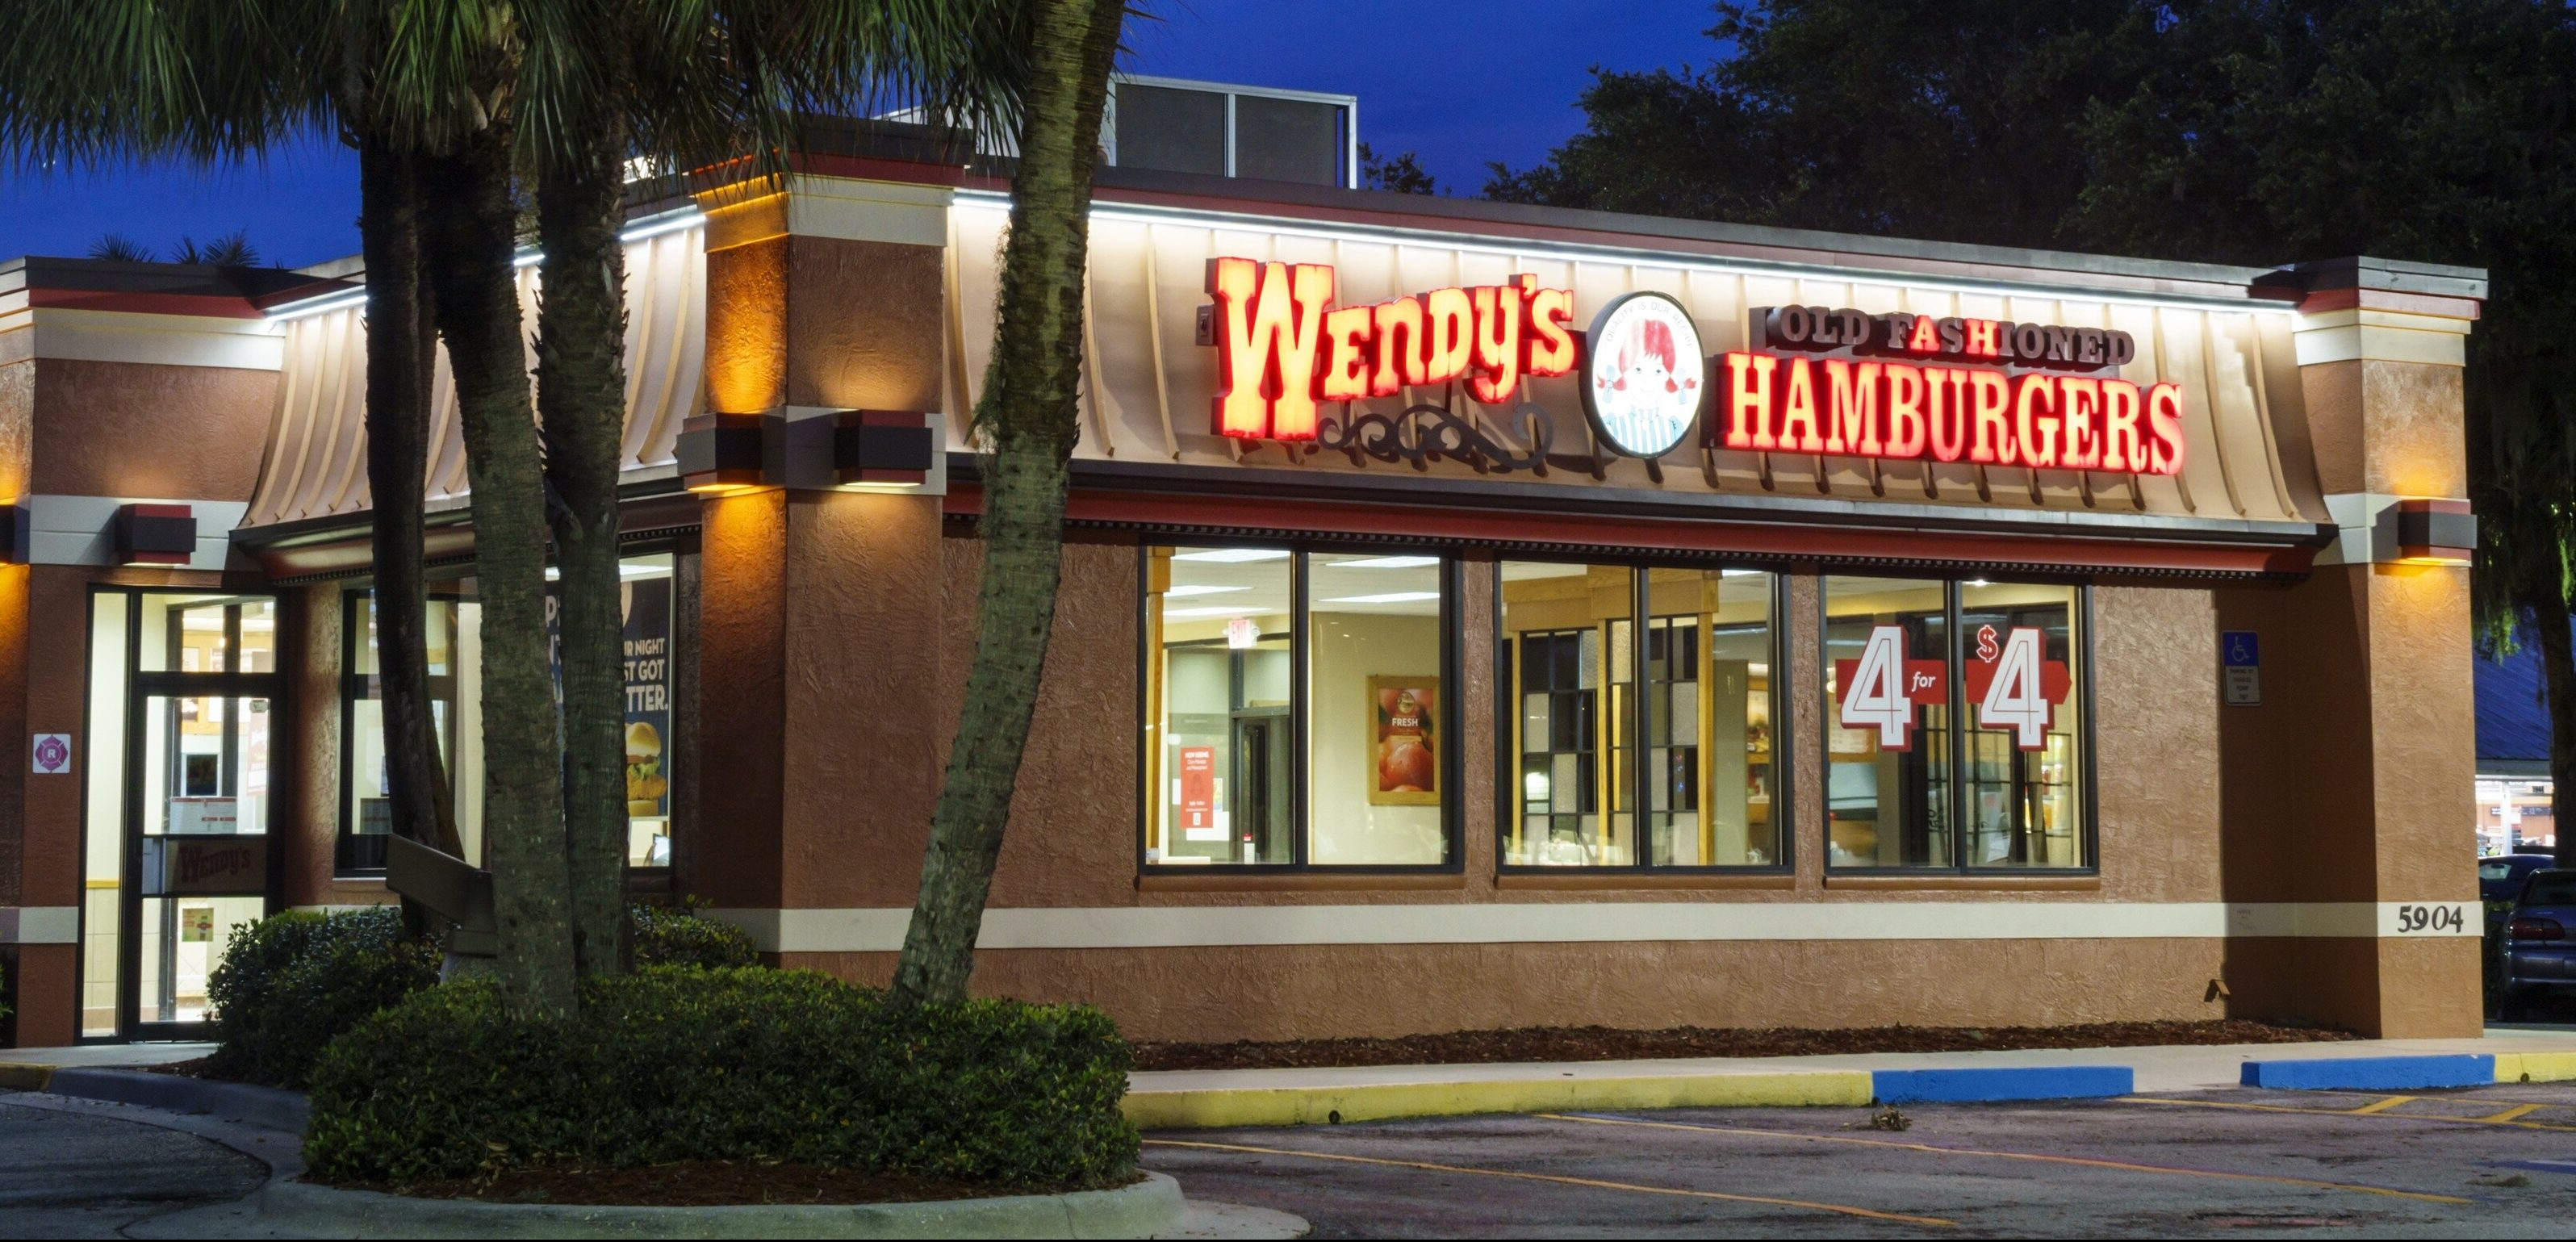 American burger chain Wendy's is coming to the UK and fans couldn't be happier